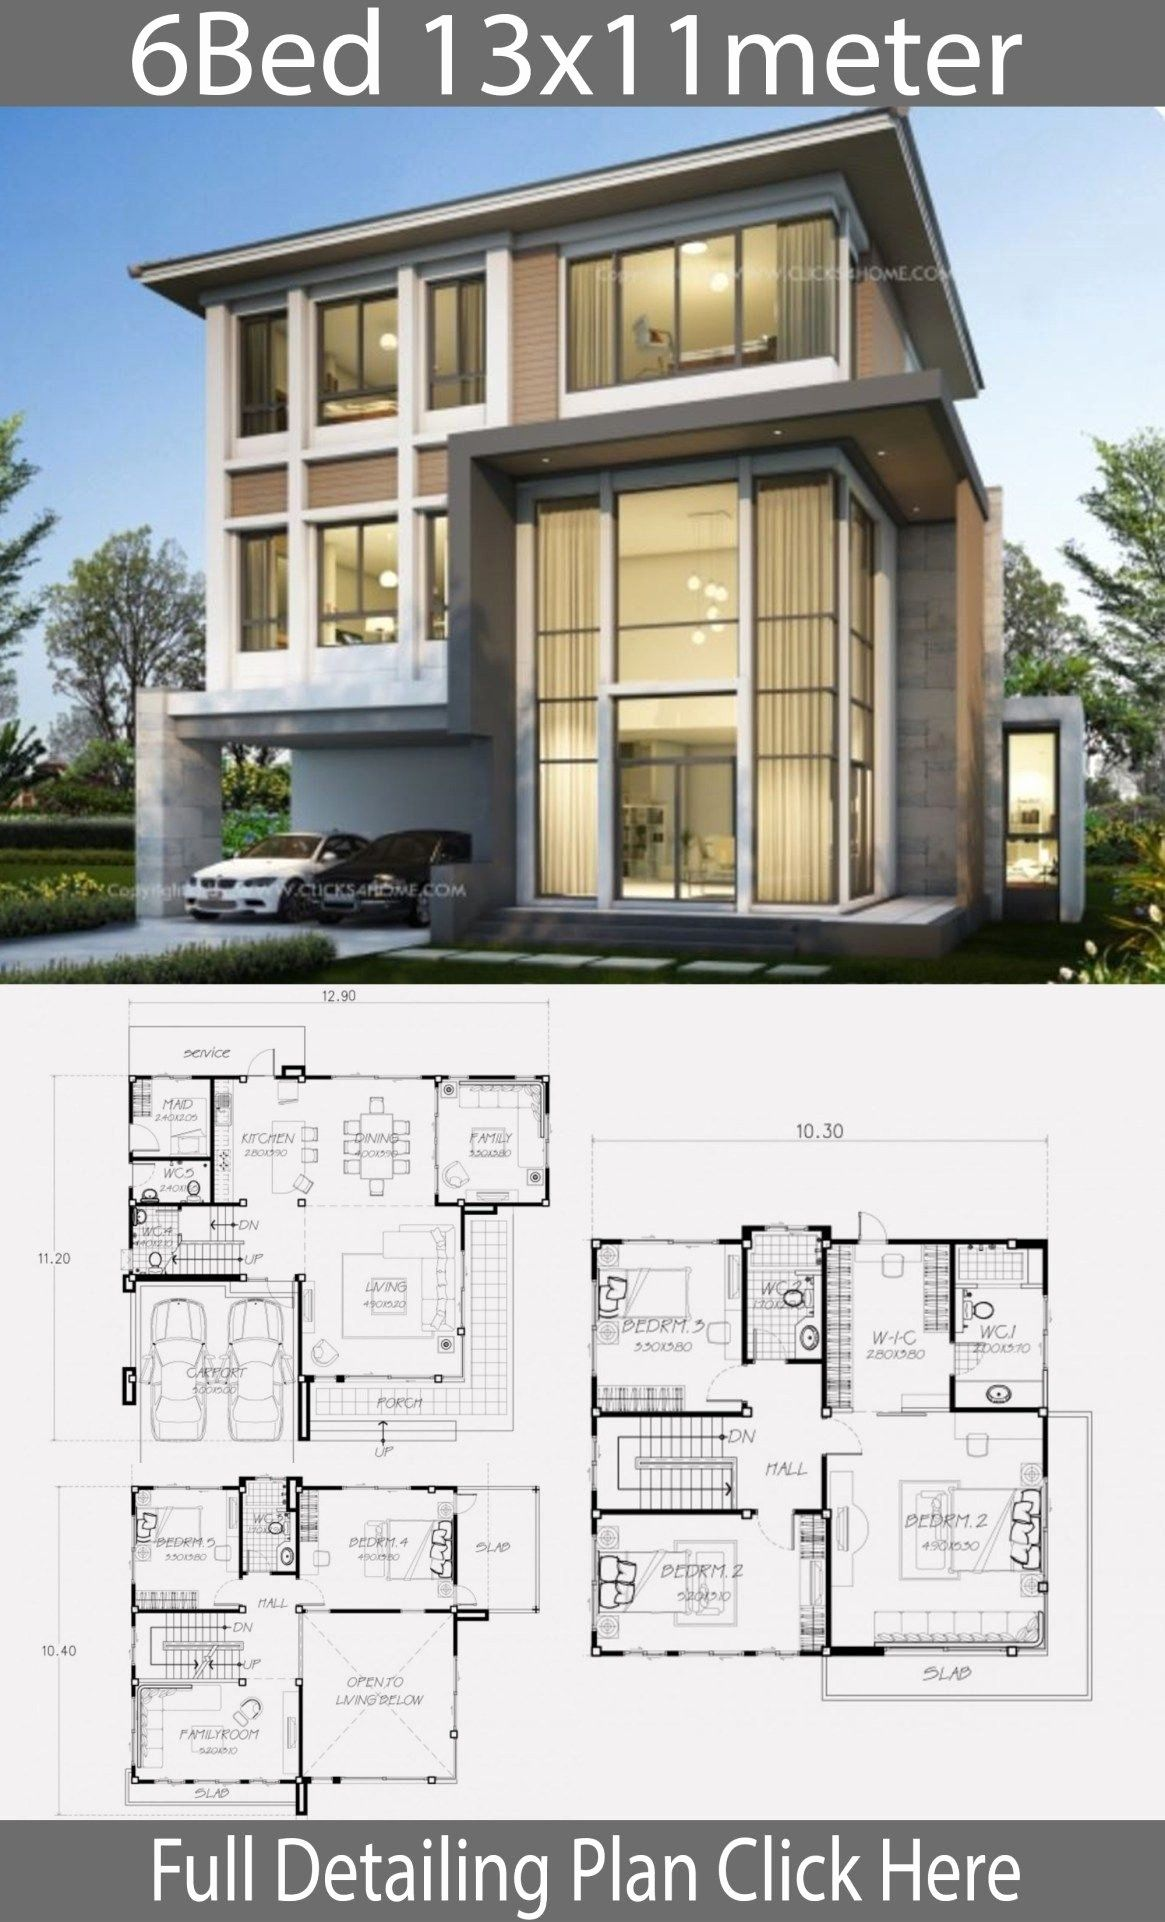 Sims 3 Modern House Ideas Untung Best In 2020 Home Design Plan Modern House Plans Luxury House Plans